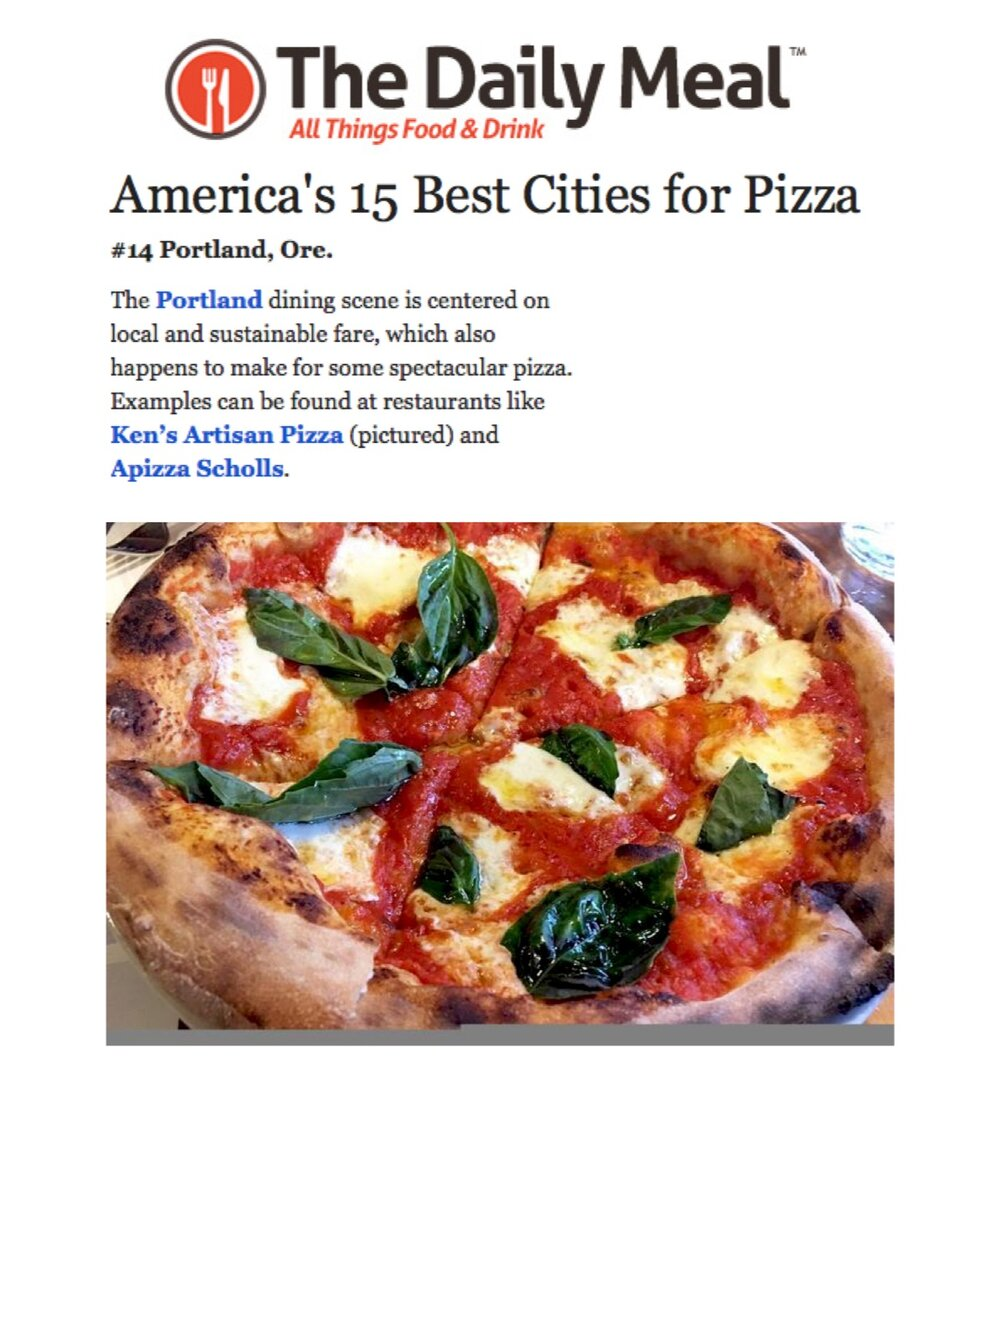 10.06.17TheDailyMeal_Americas15BestCitiesForPizza.jpg